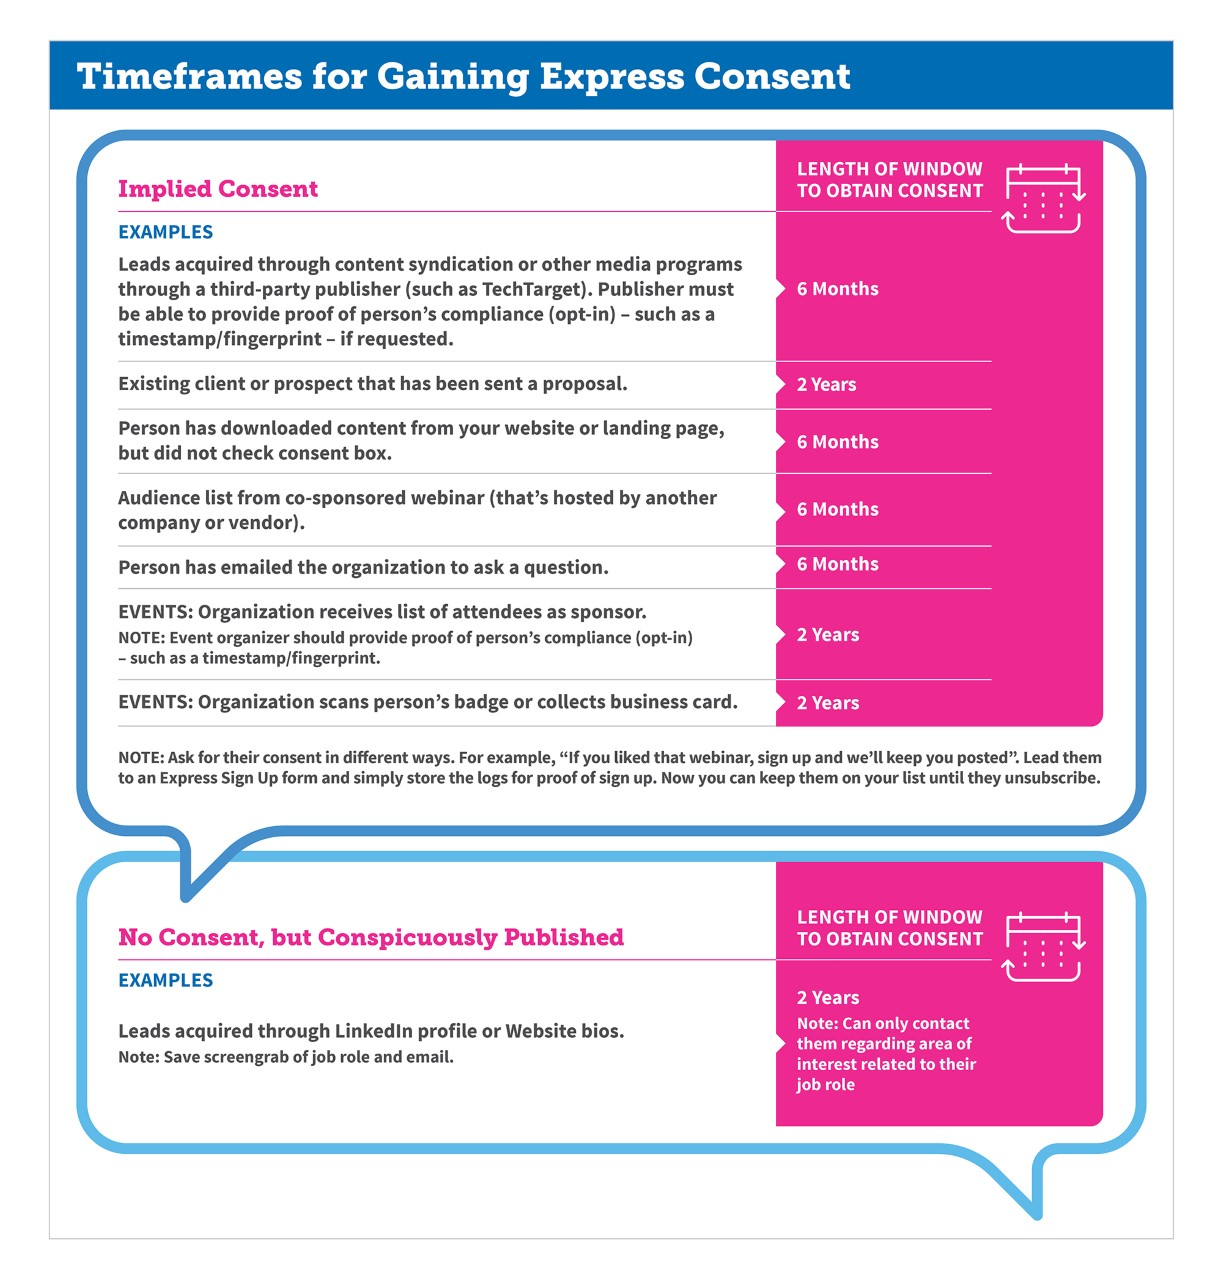 Timeframes for Gaining Express Consent